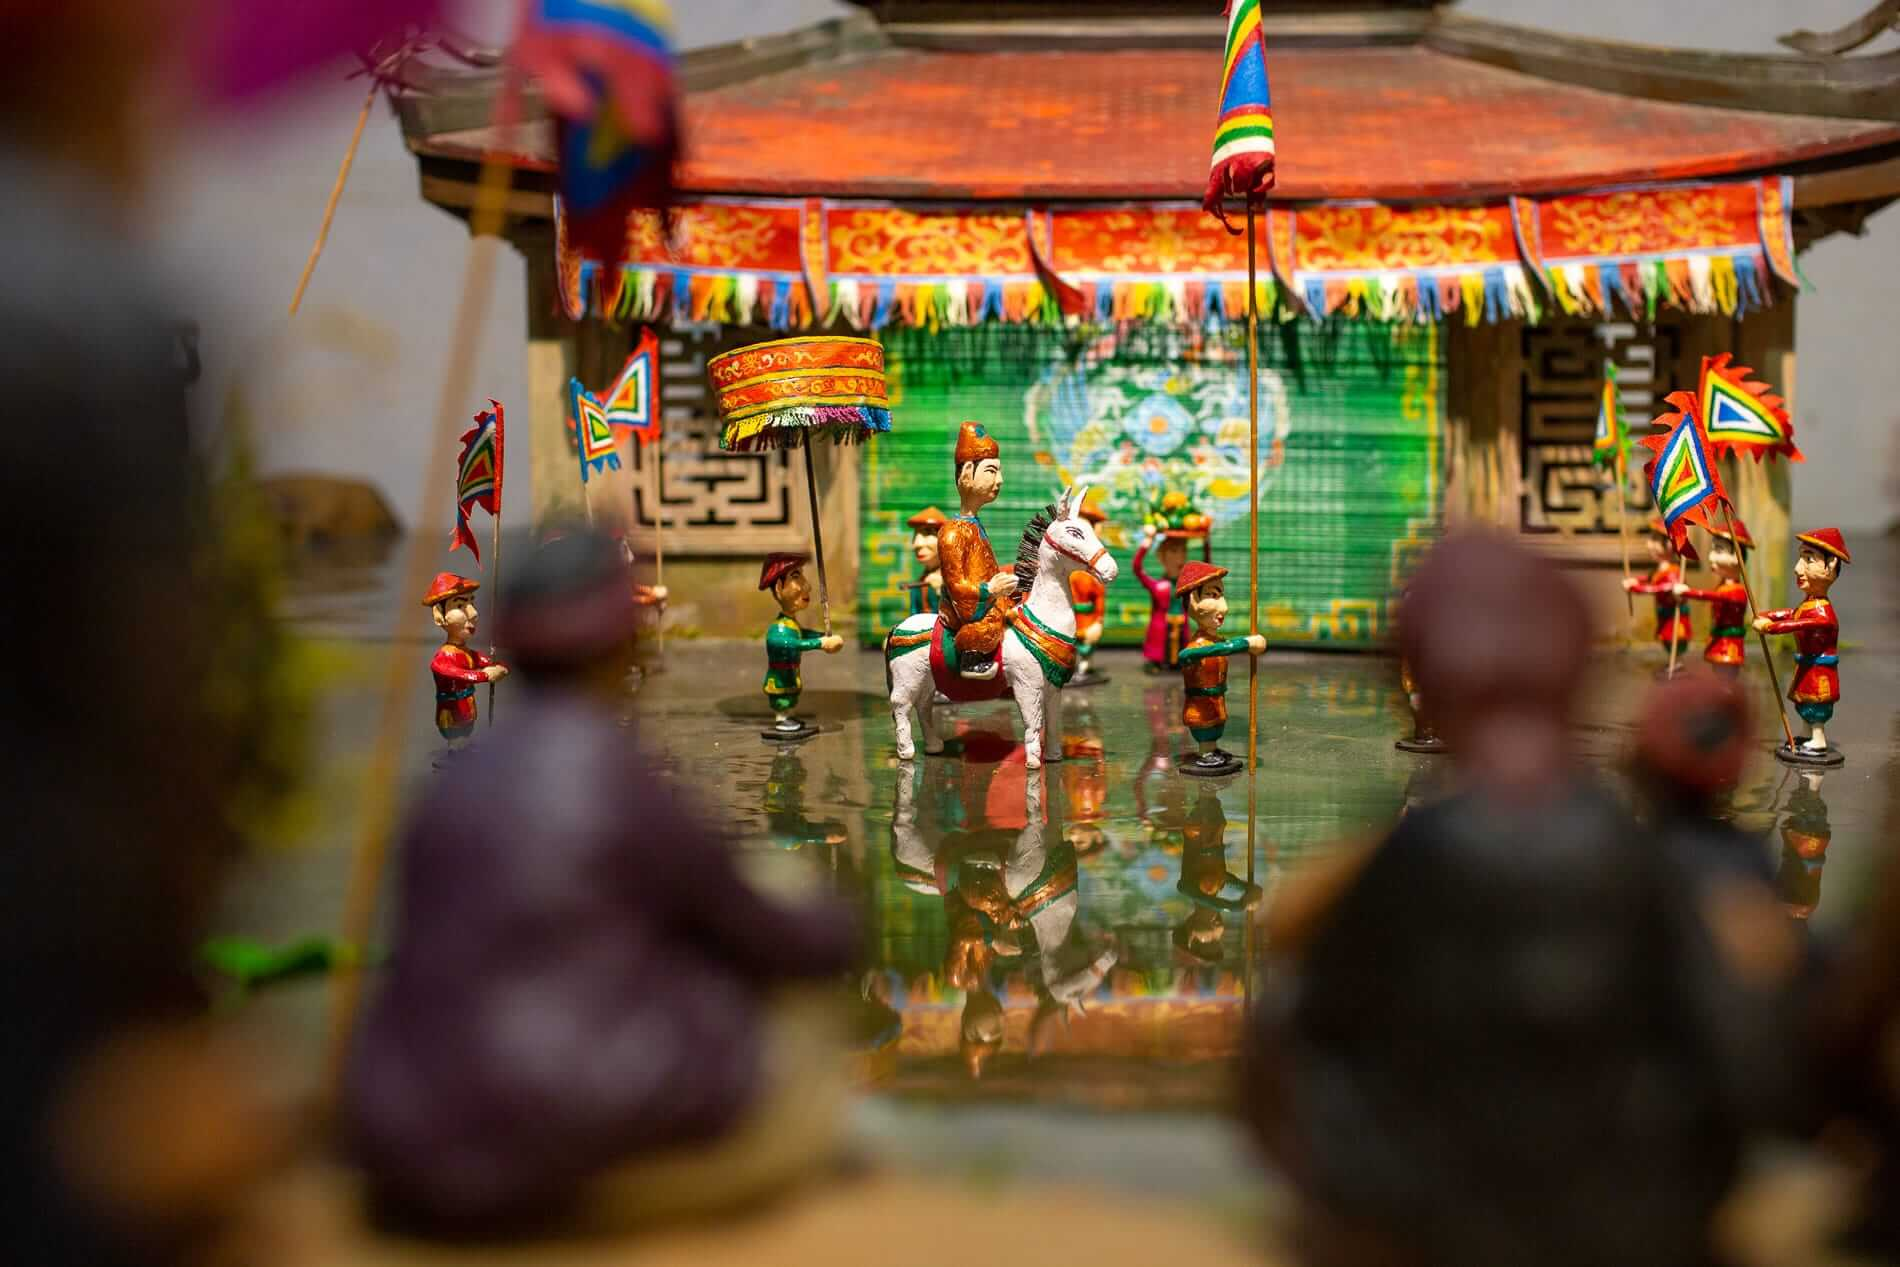 Miniature artwork at Cotic Hoi An